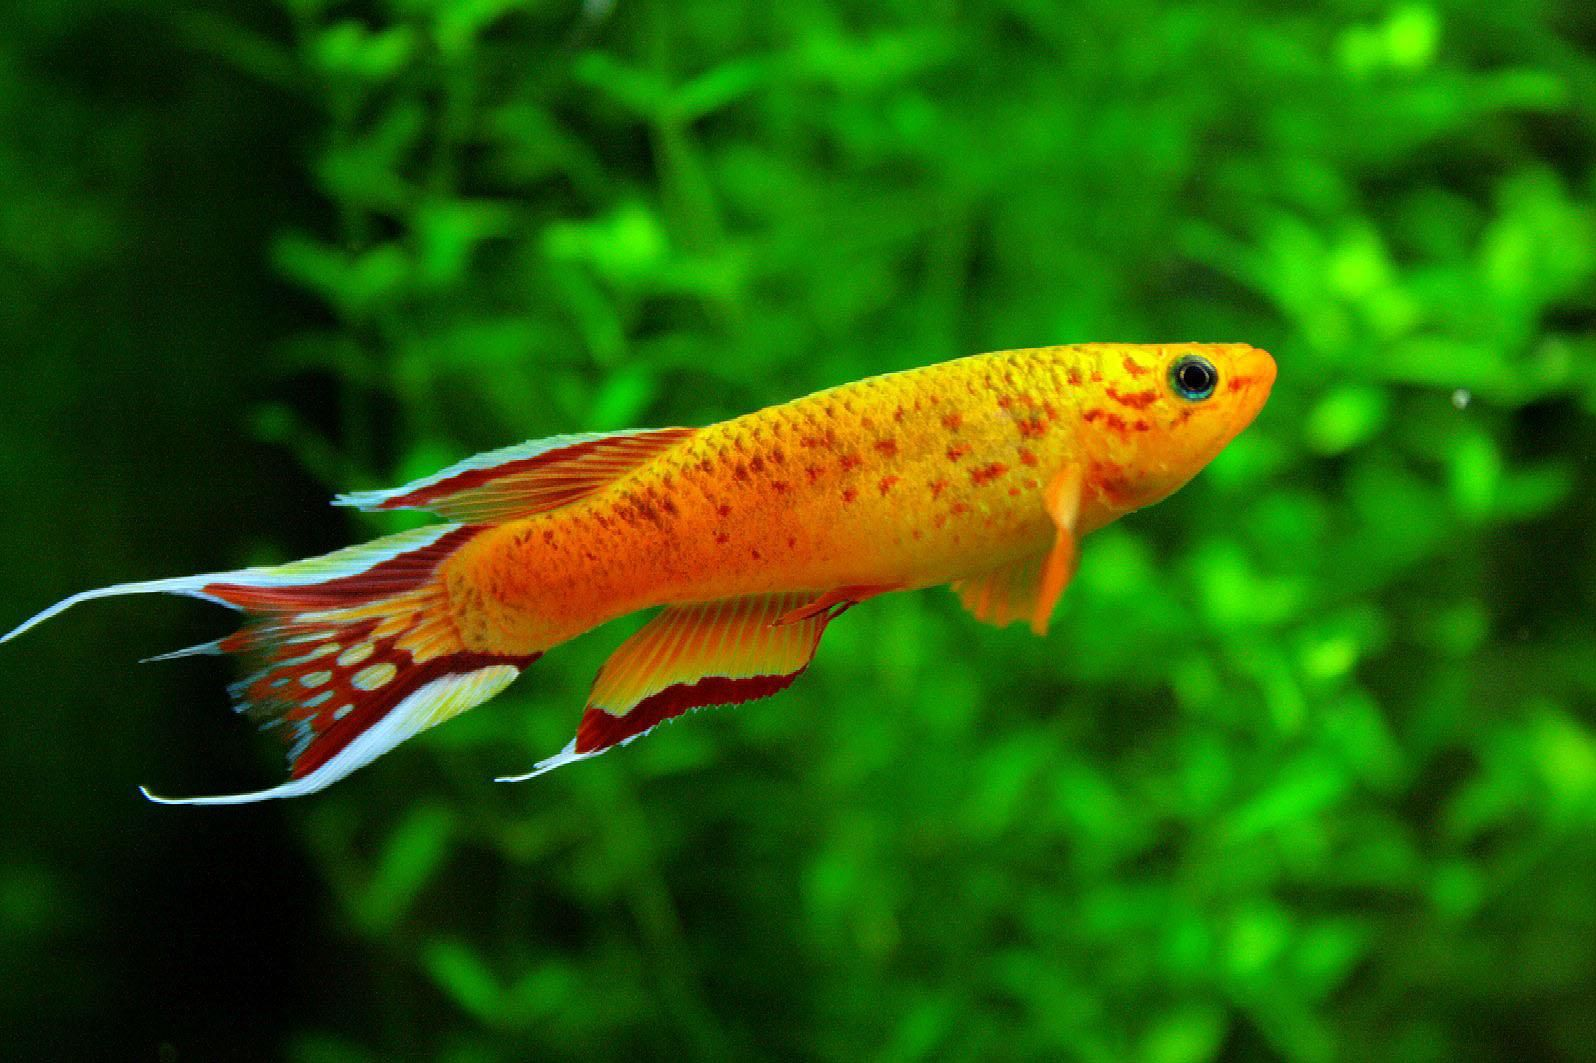 Freshwater aquarium fish list species - Freshwater Fish Tropical Discussion Tropical Fish Forums Wallpaper